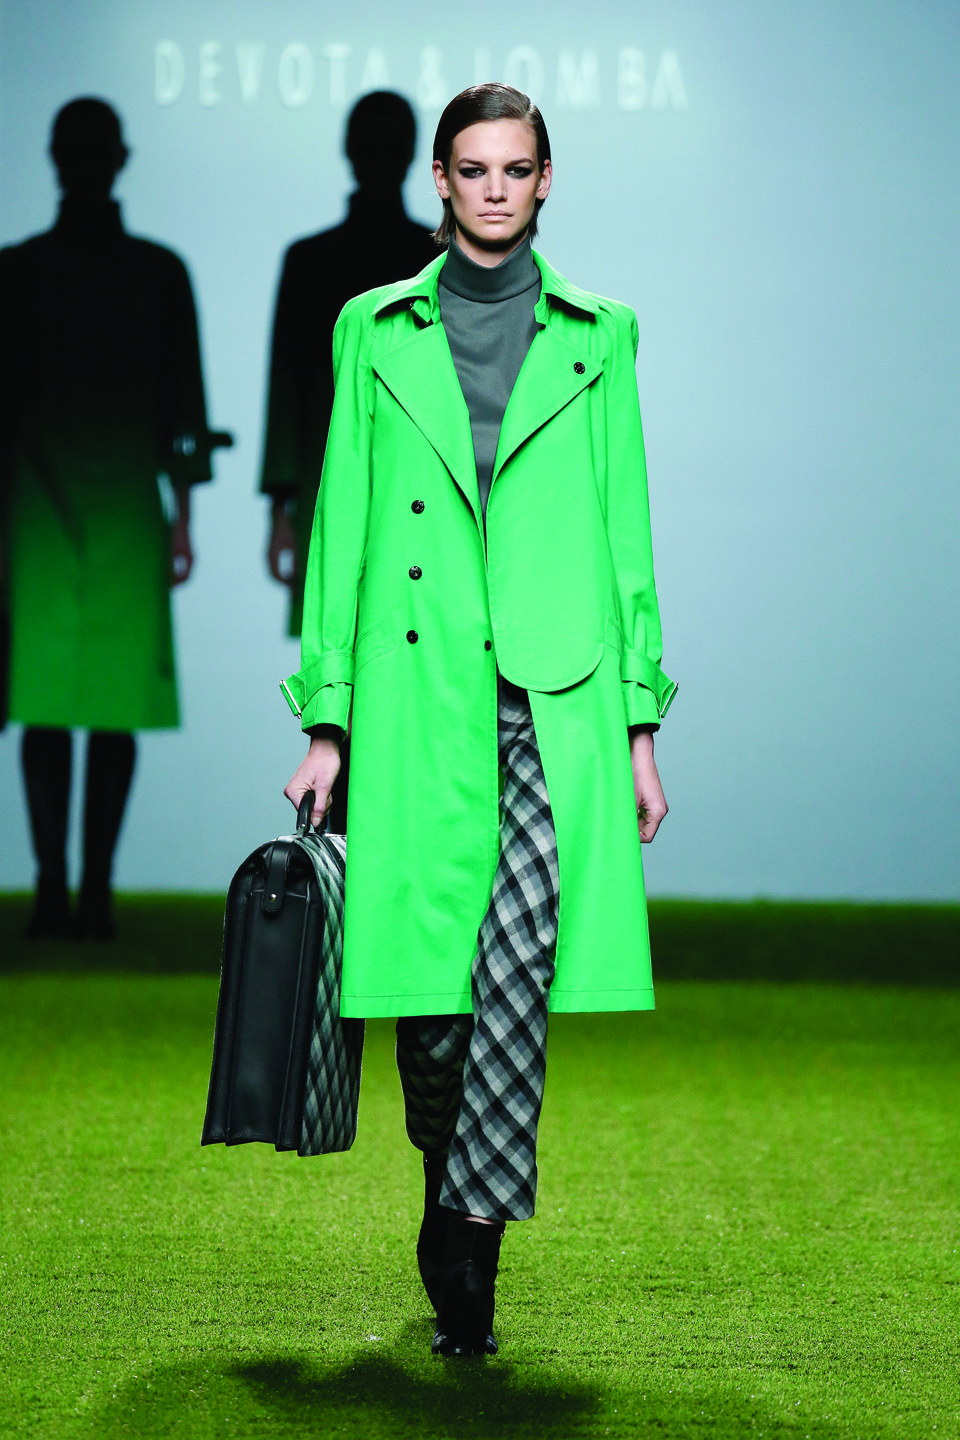 Mercedes Fashion Week Madrid Oto?o/Invierno 2015-2016